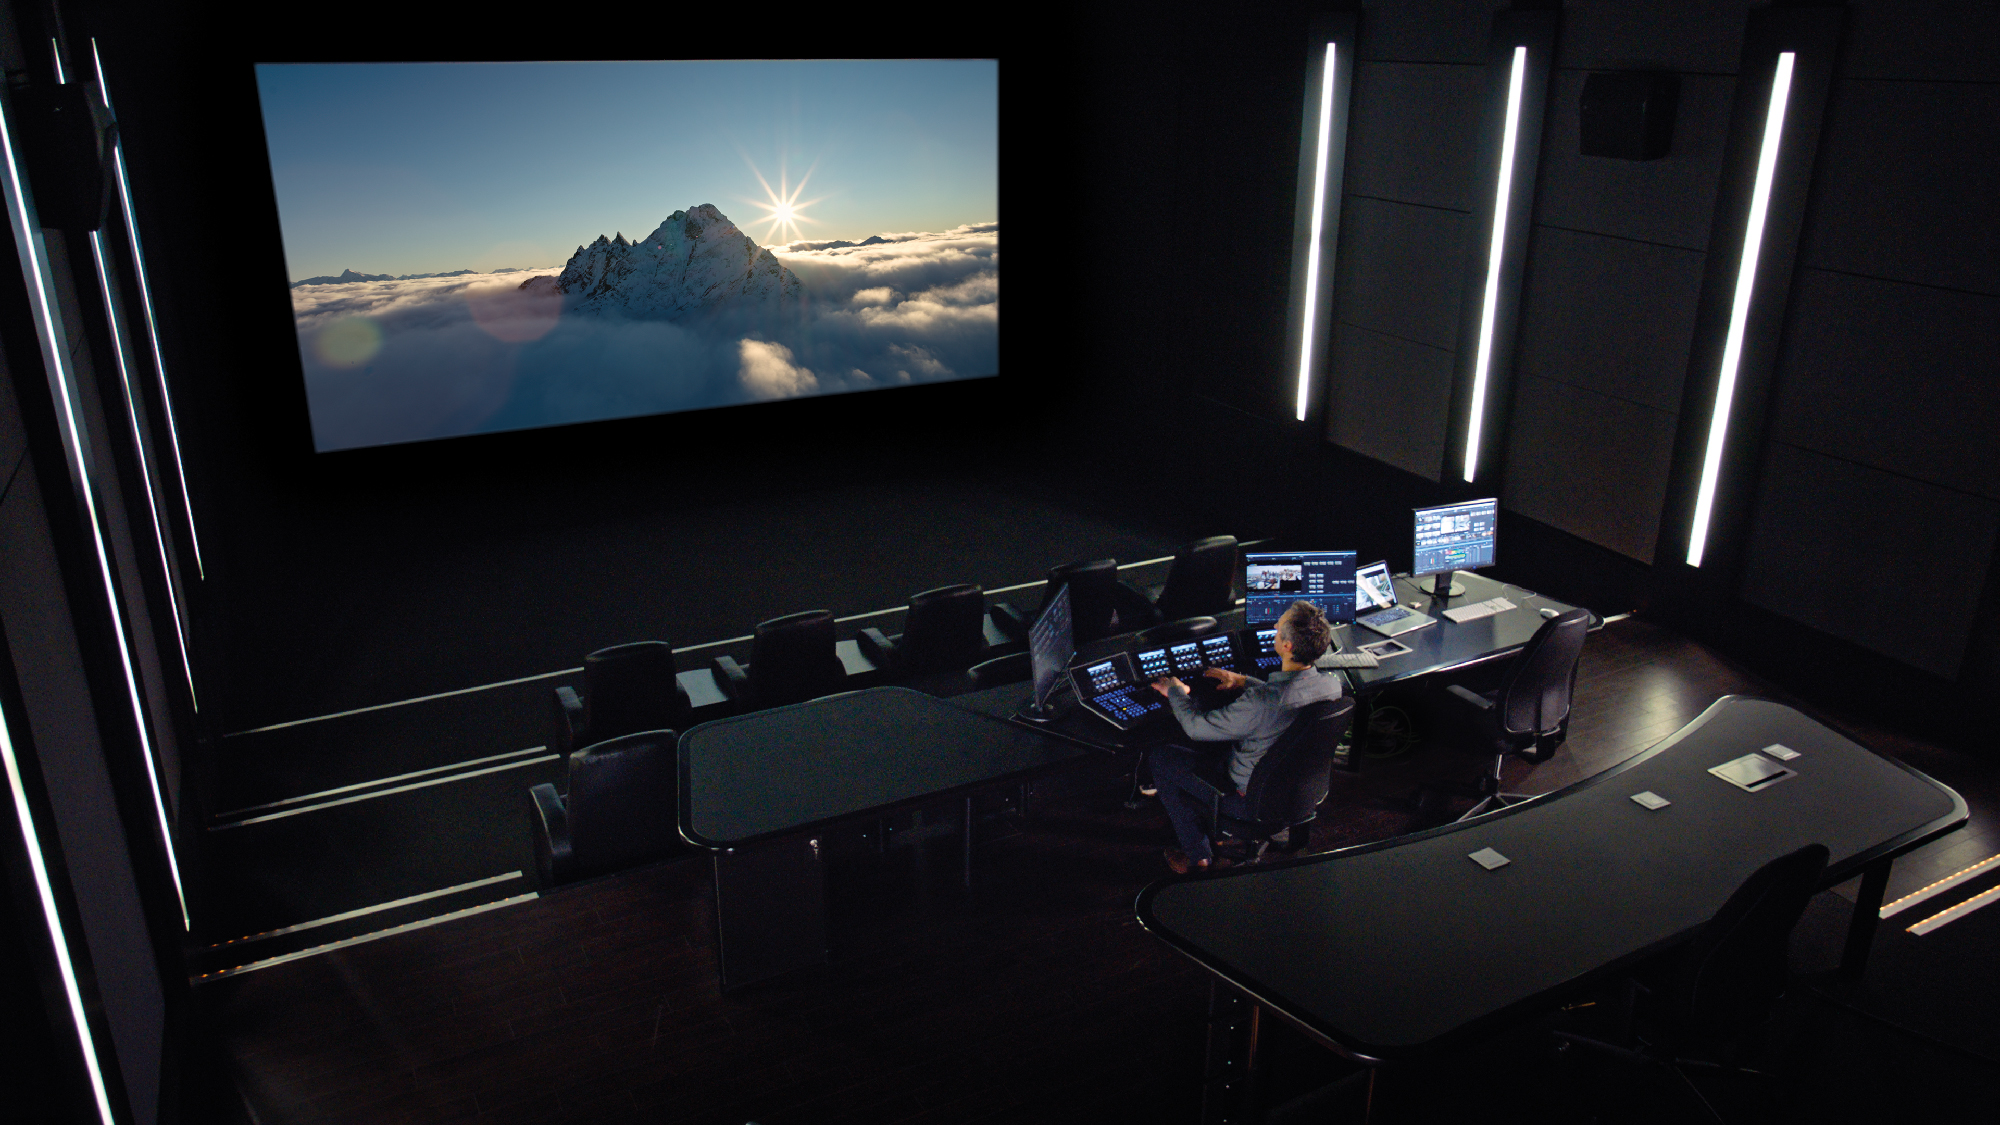 All about Dolby Vision